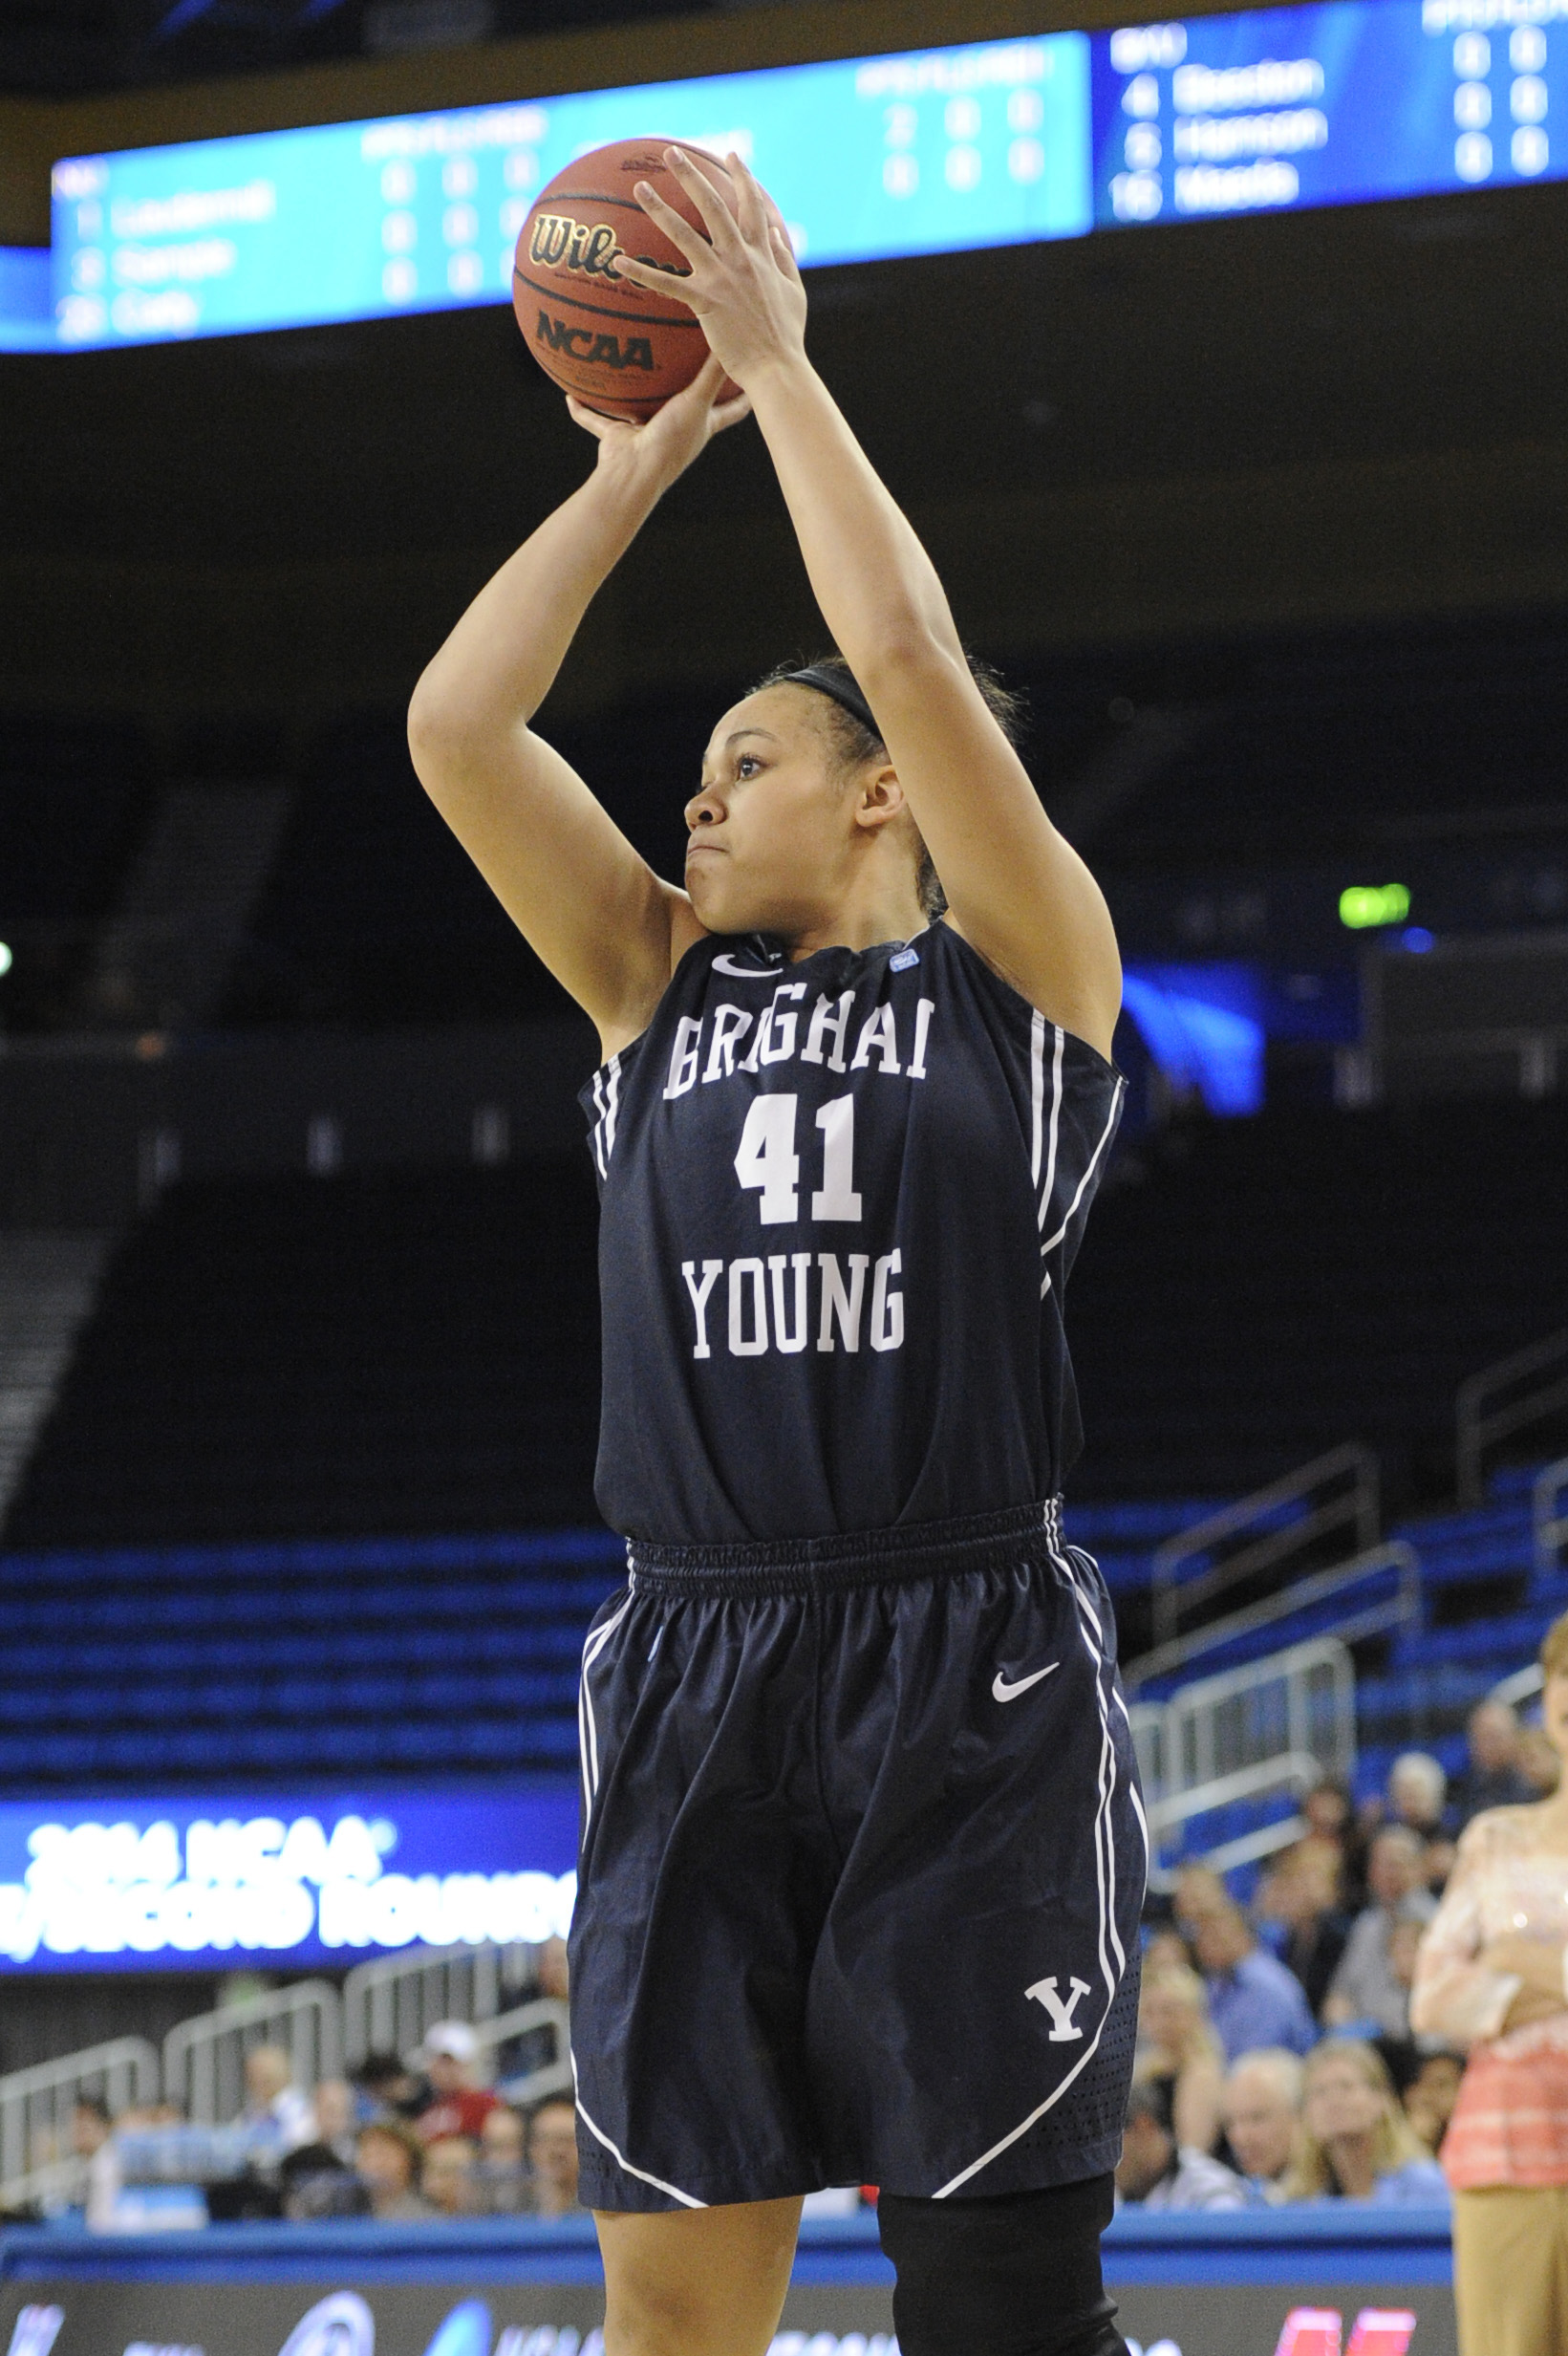 Morgan Bailey leaves the Cougars after scoring over 1,000 points in her career